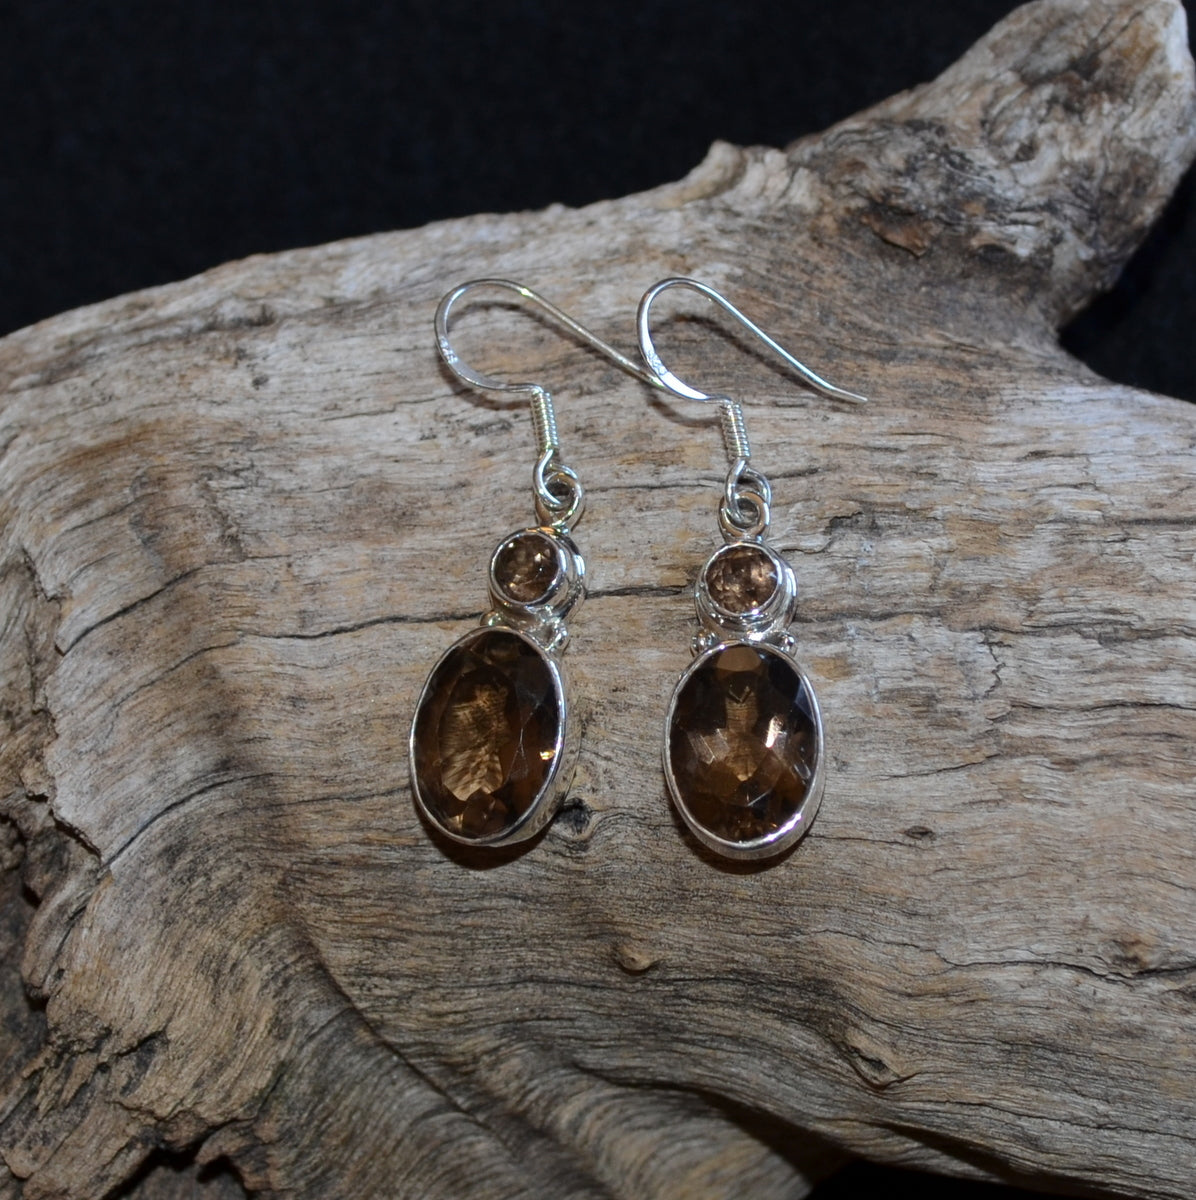 Smoky Quartz 925 Earrings - Grounding Cleansing - Now at Illiom Crystals.  We have Afterpay!